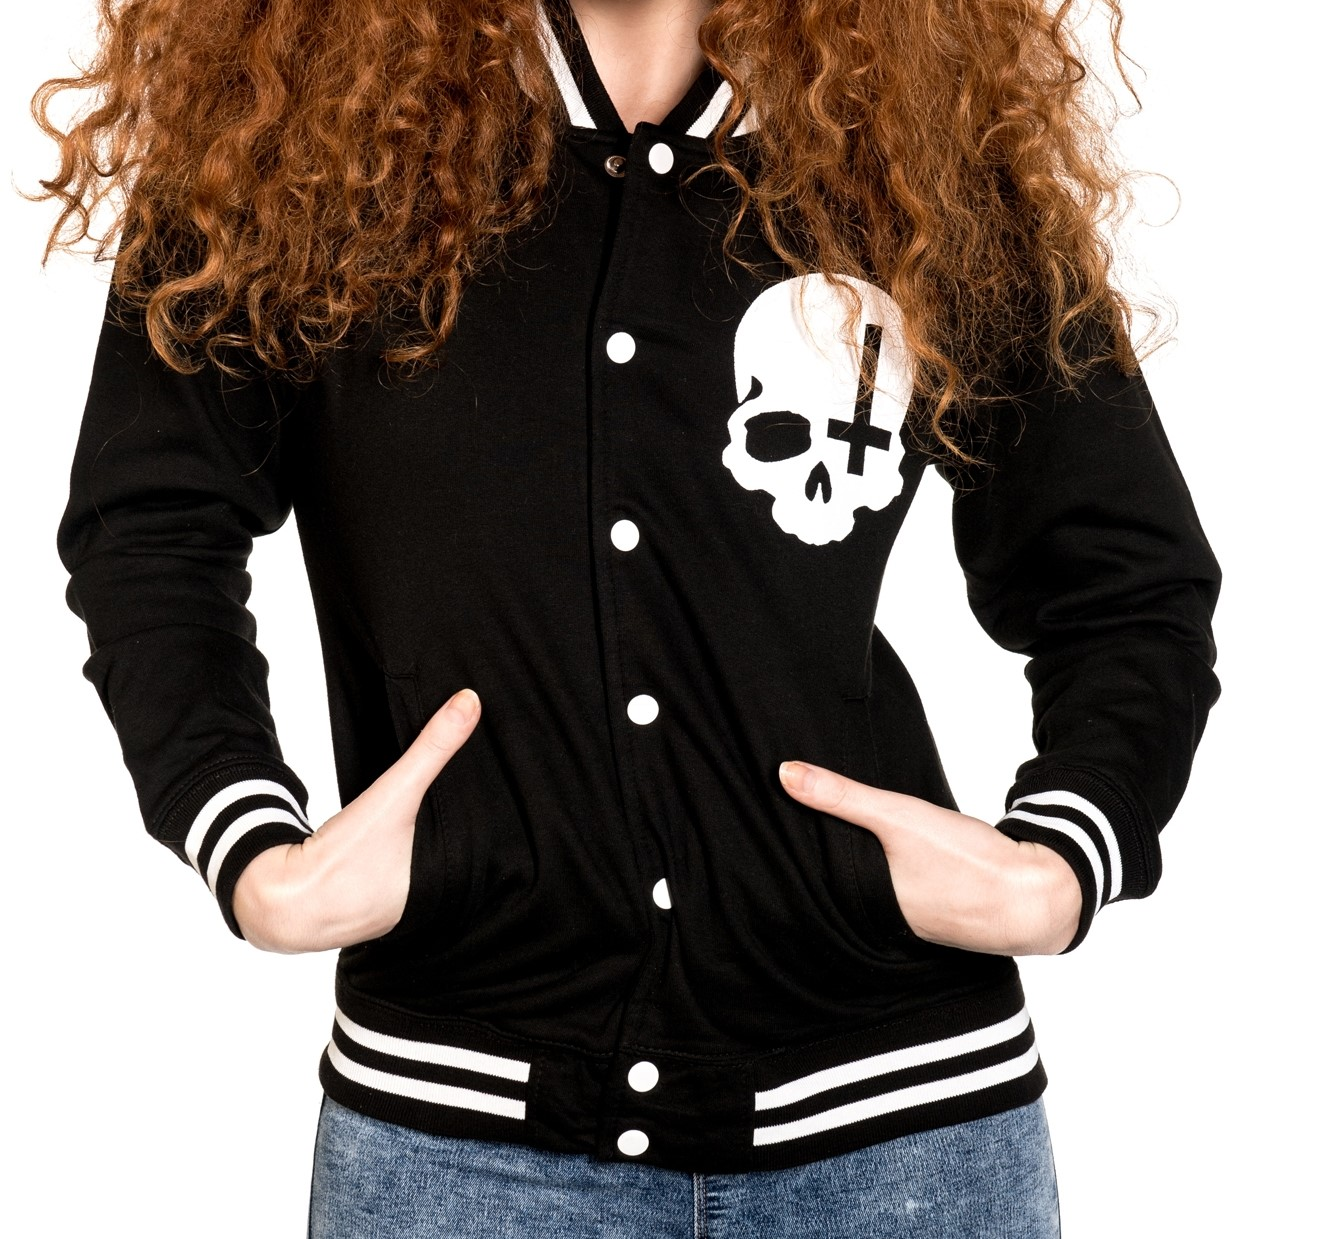 ropa sudadera calaveras tattoo style alternativa rock gotica online 13depicas chaqueta universitaria